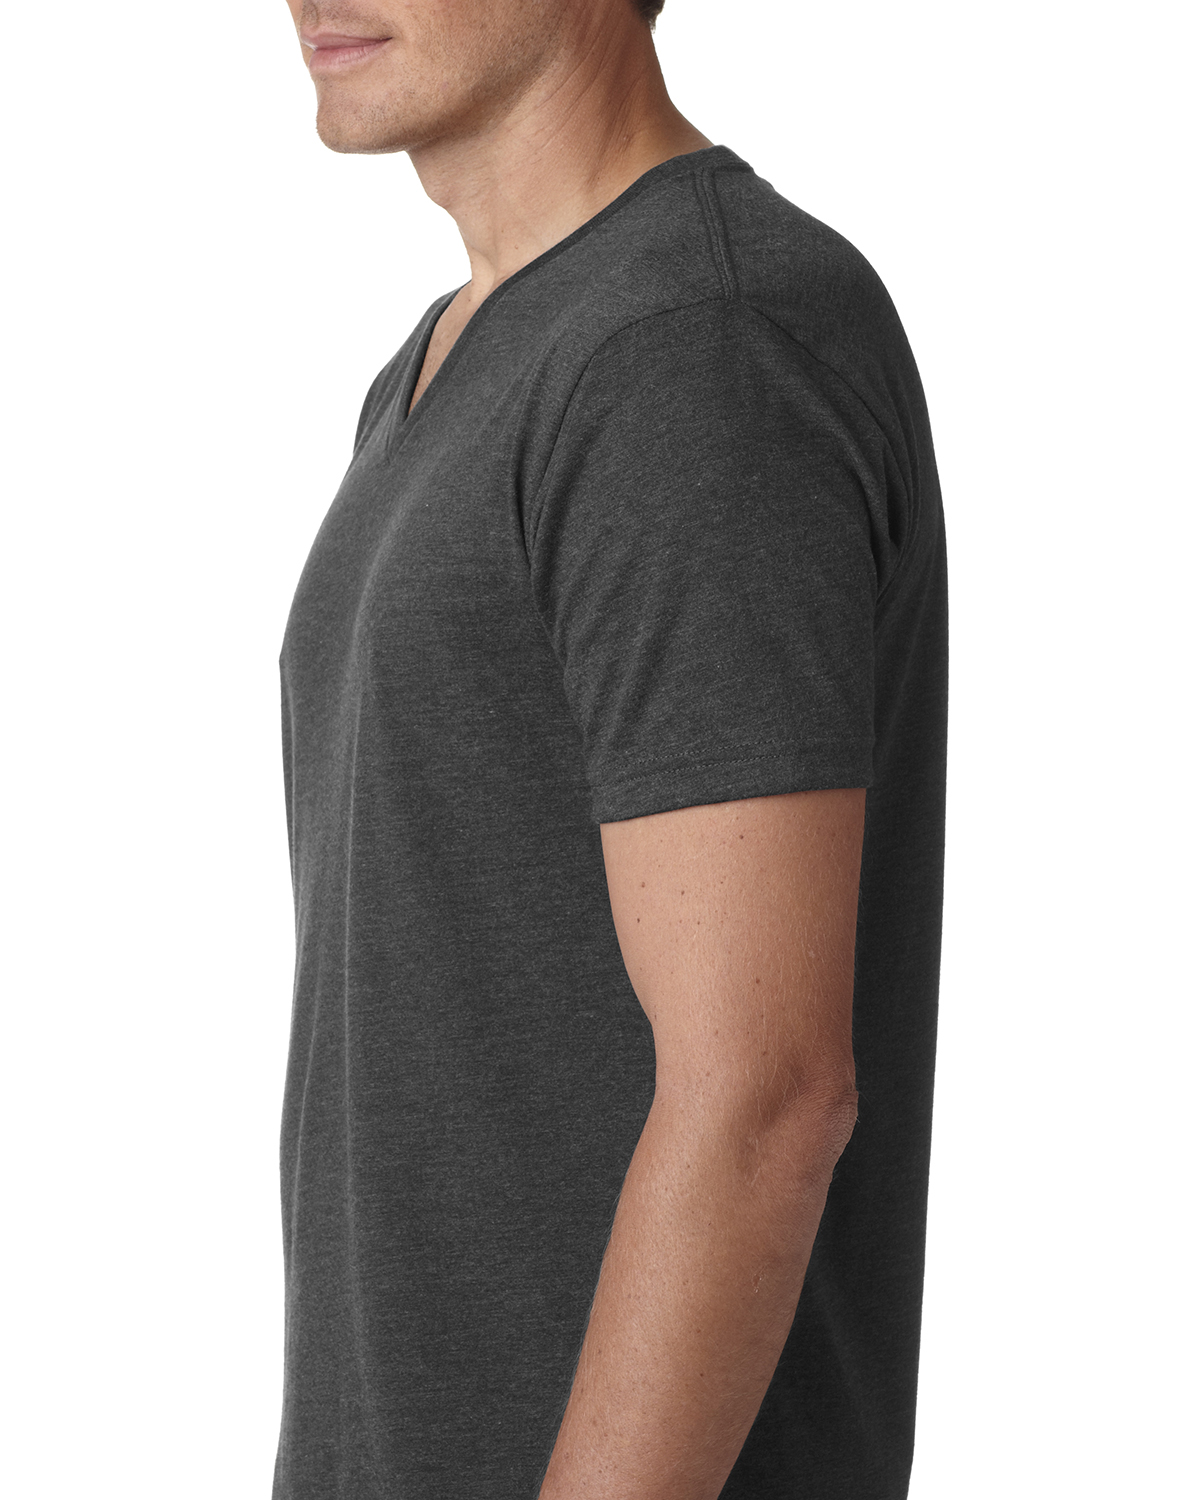 Next Level Mens CVC V-Neck Tee 6240-Stone Grey 12 Pack